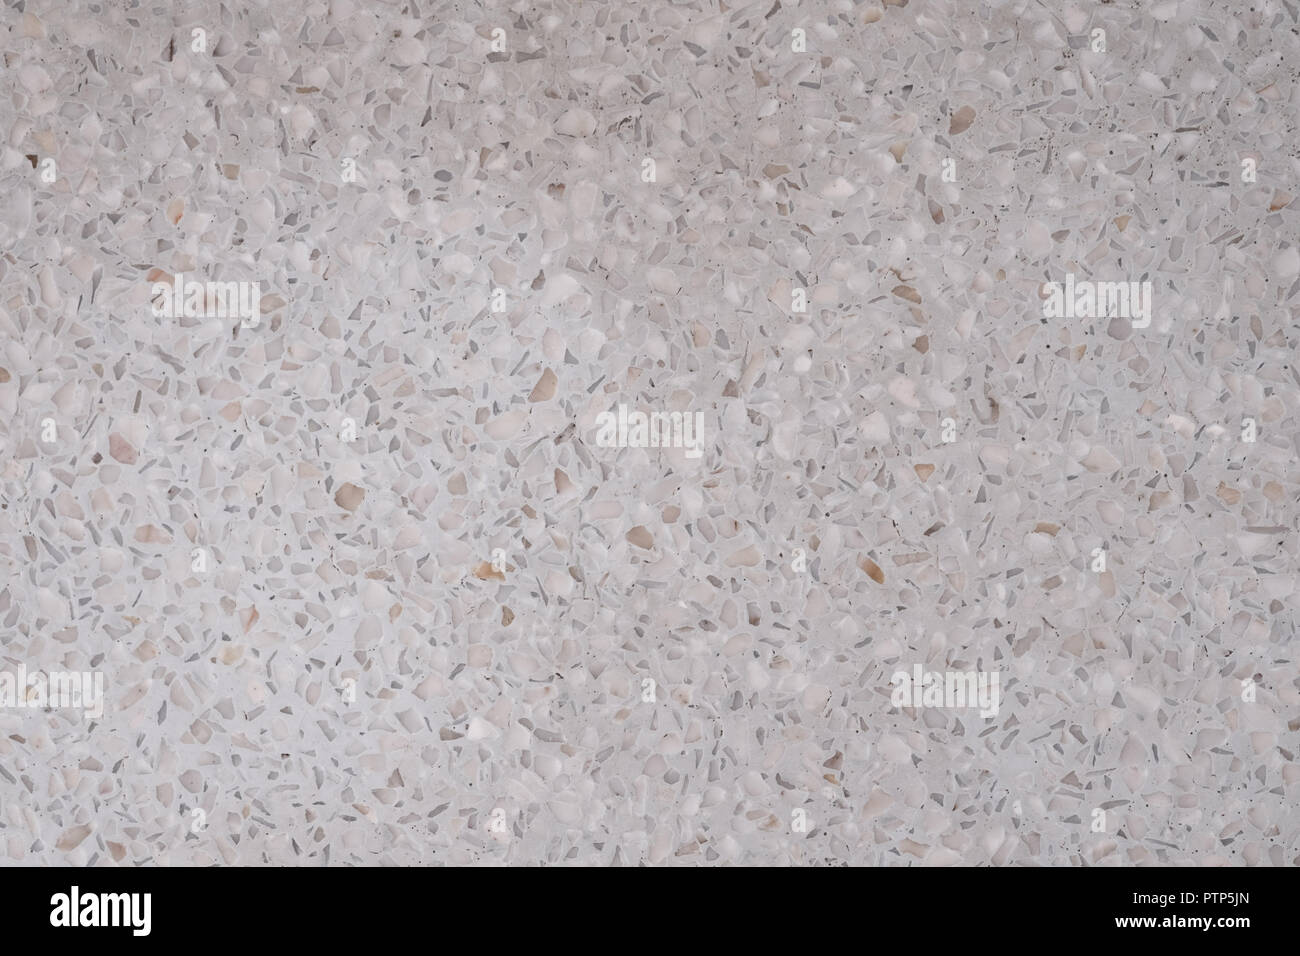 Terrazzo Polished Stone Floor And Wall Pattern And Color Surface Marble And Granite Stone Material For Decoration Background Texture Interior Design Stock Photo Alamy